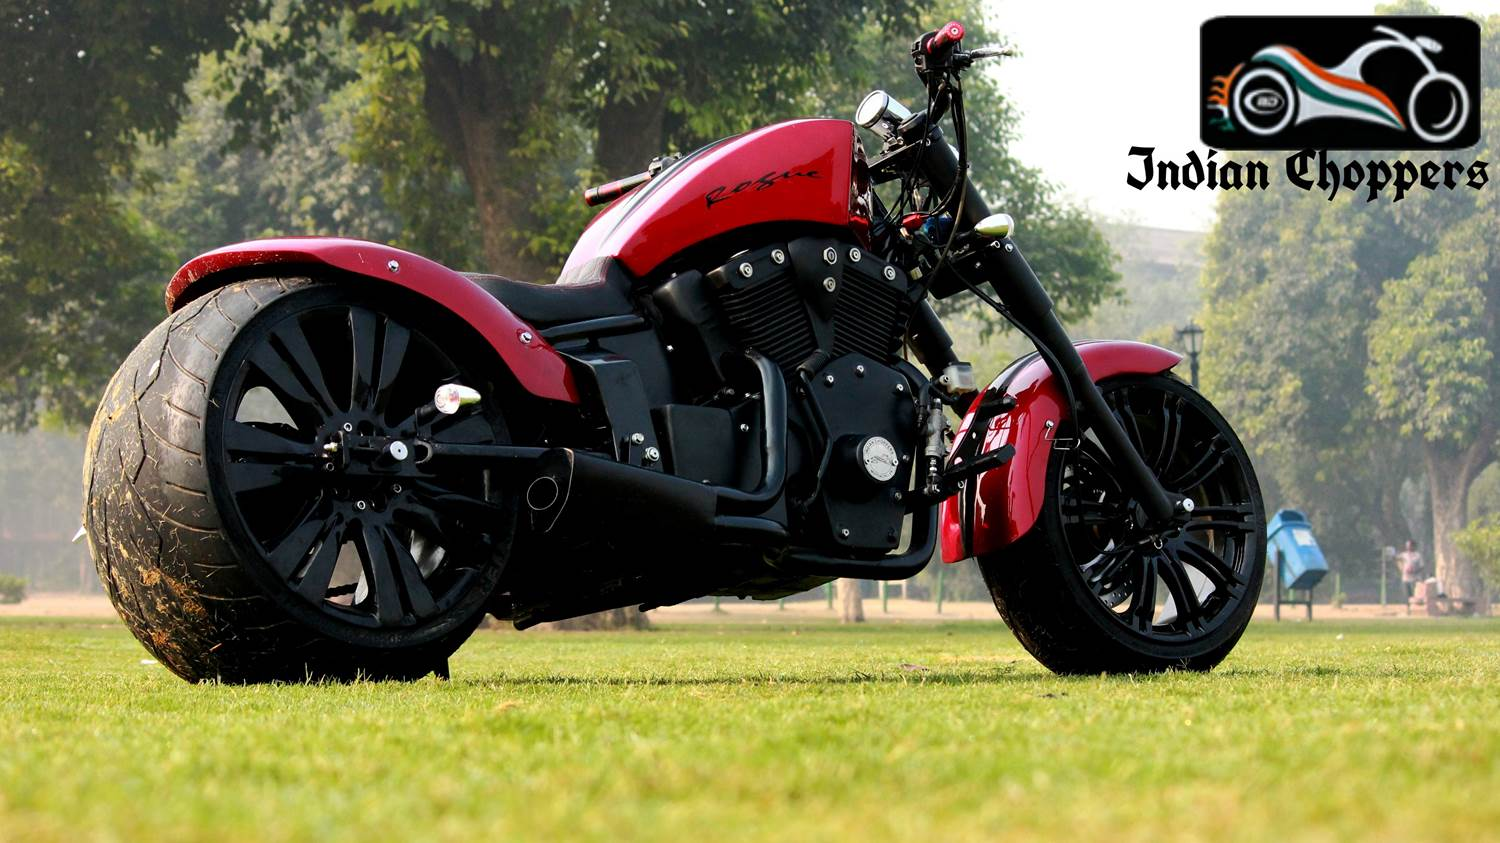 Rouge with dummy V-Twin – from Indian Chopper